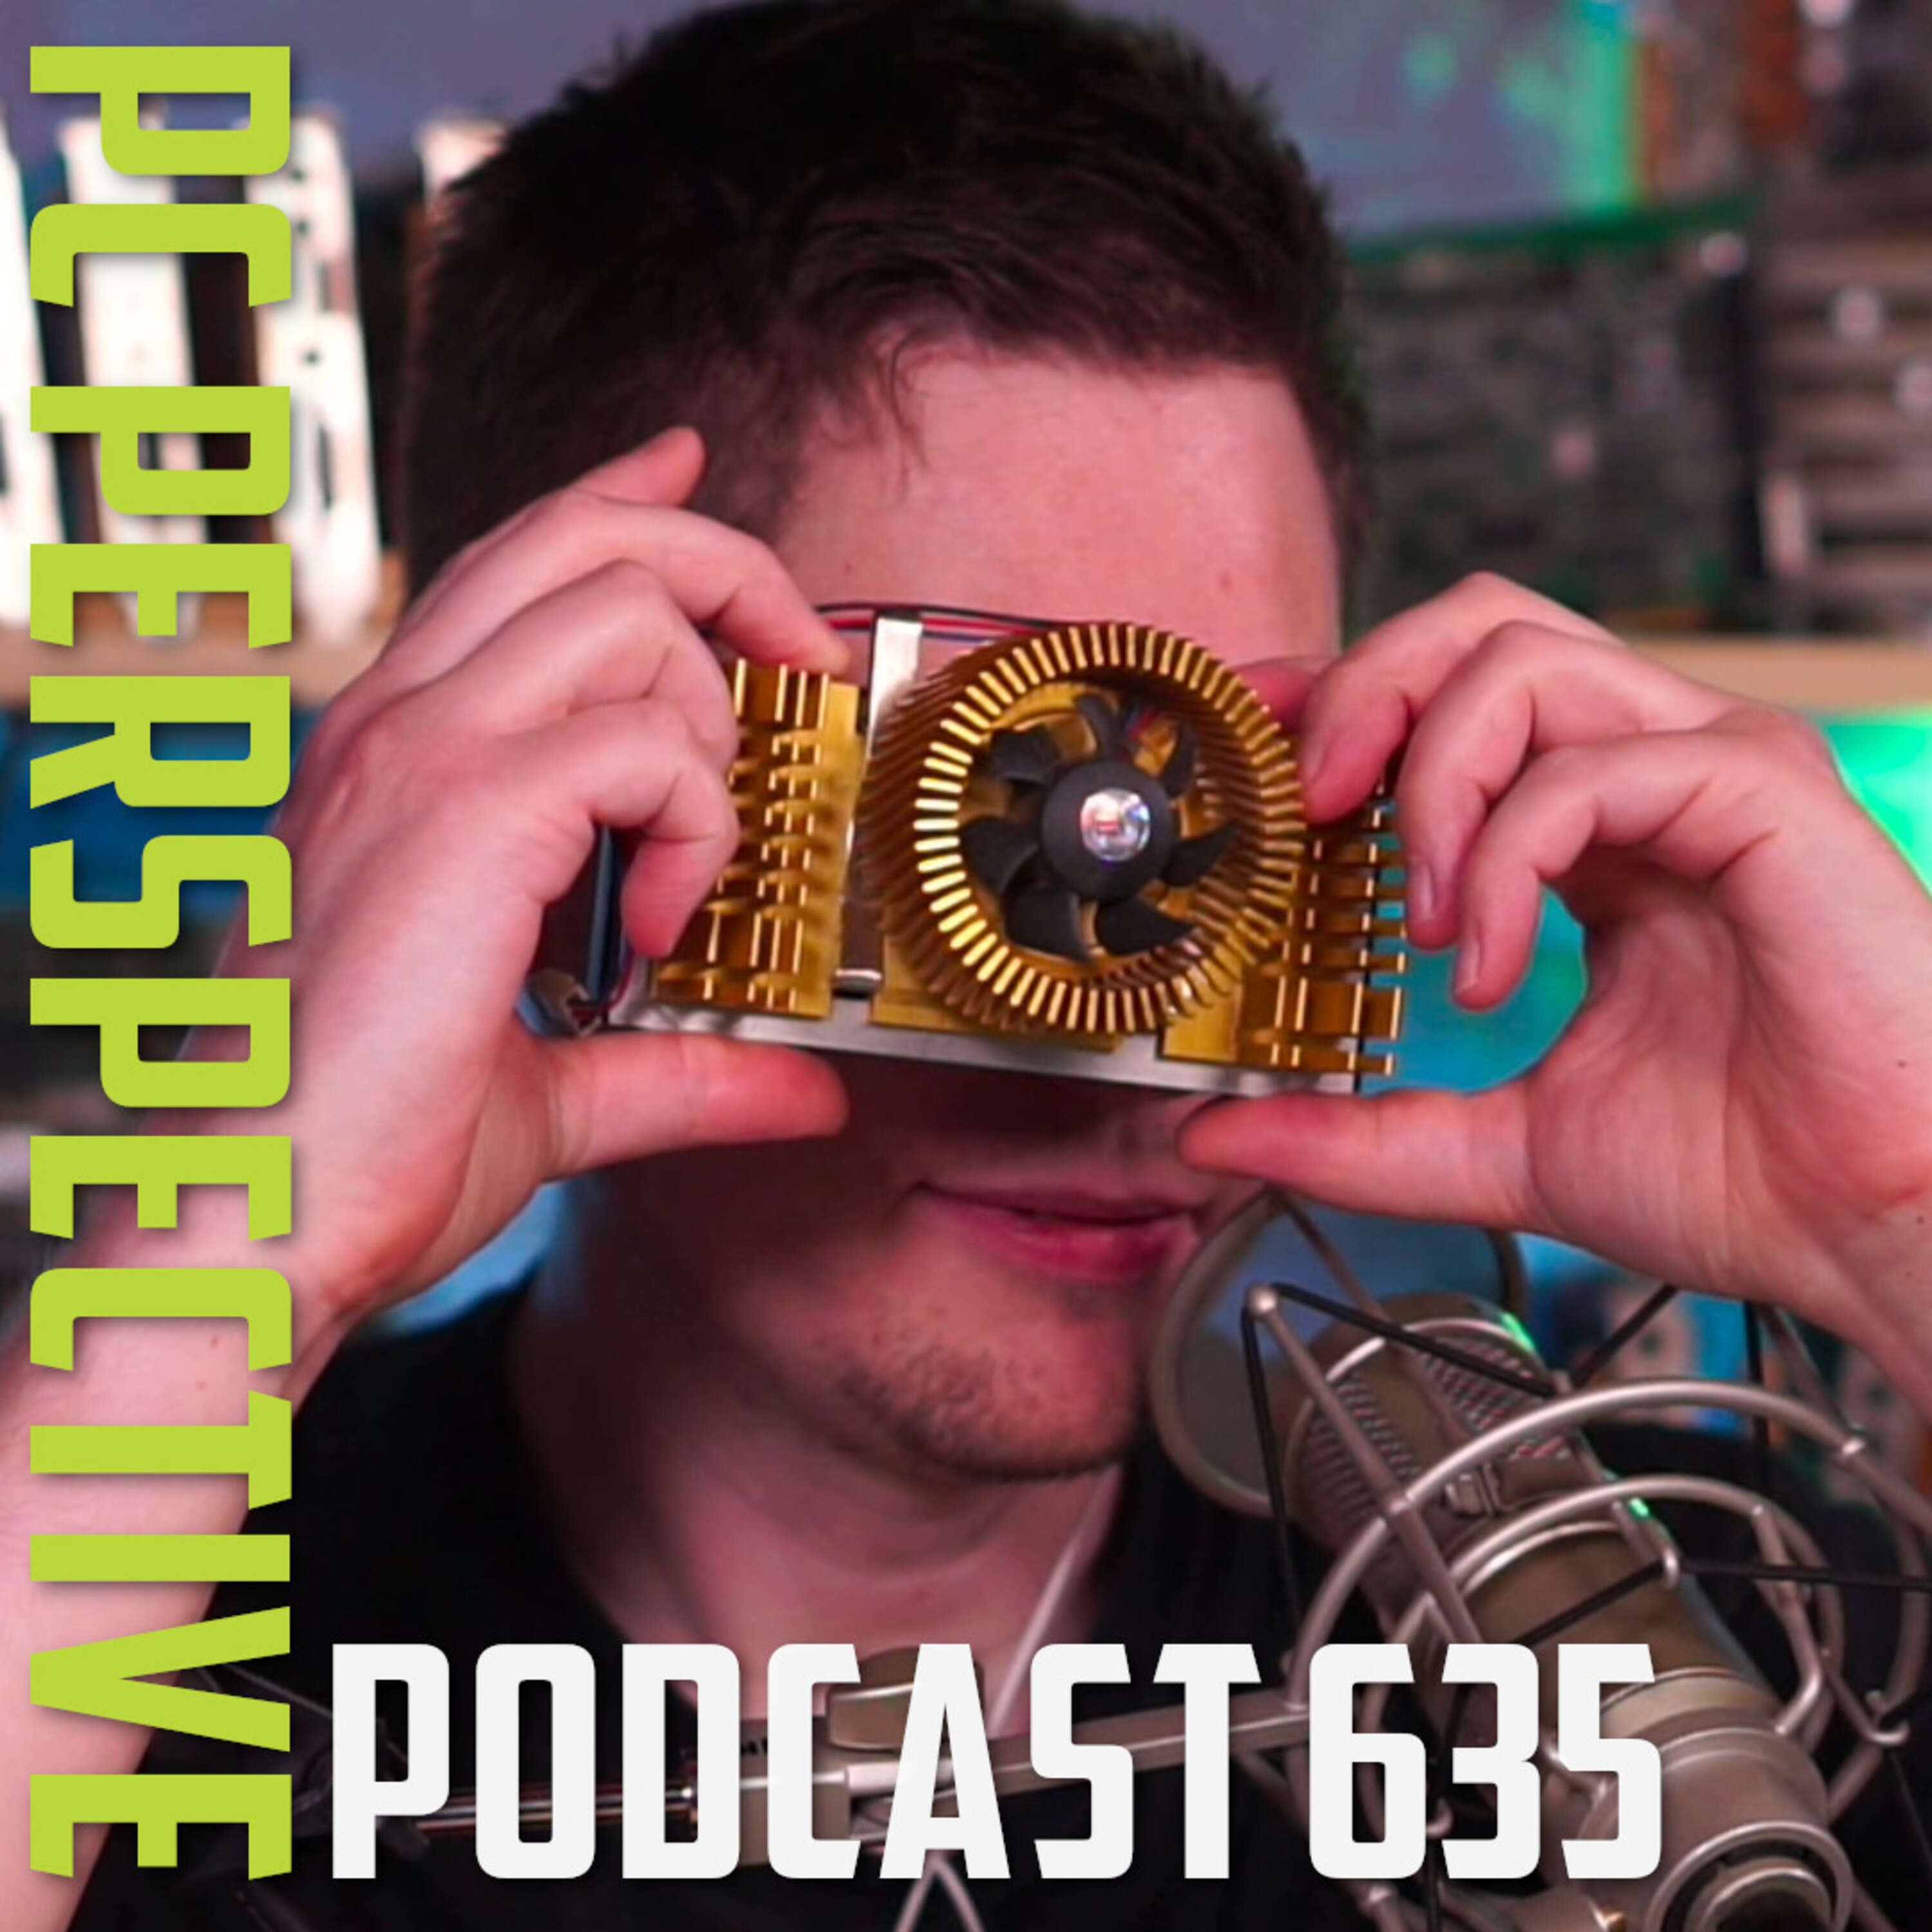 Podcast #635 - Windows 11, ASUS 6Ghz Mesh, Microcenter Apologizes + more!